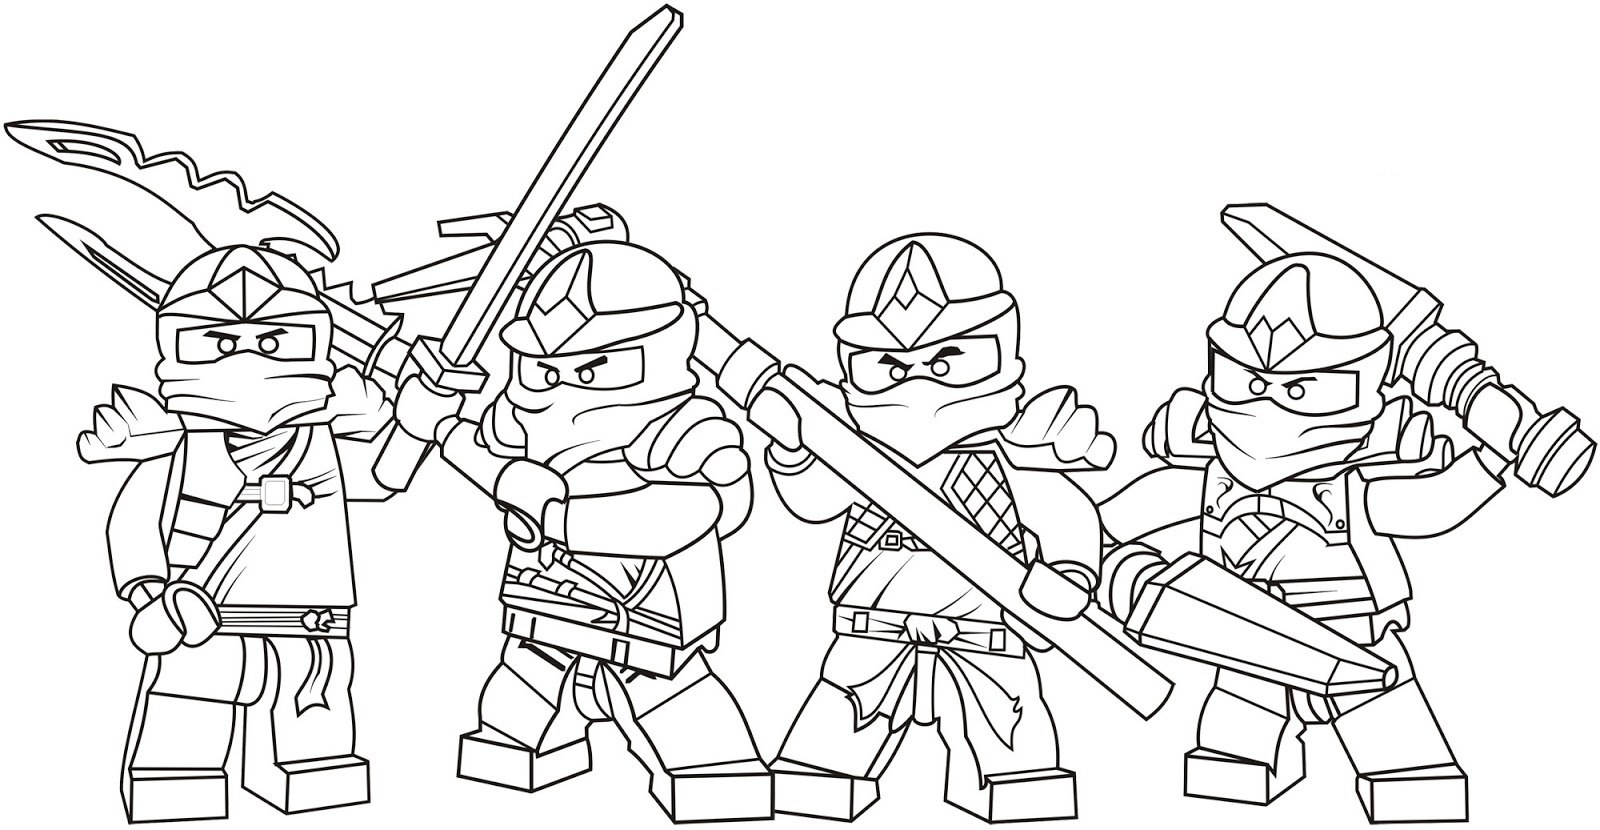 Printable Ninjago Coloring Pages For Kids